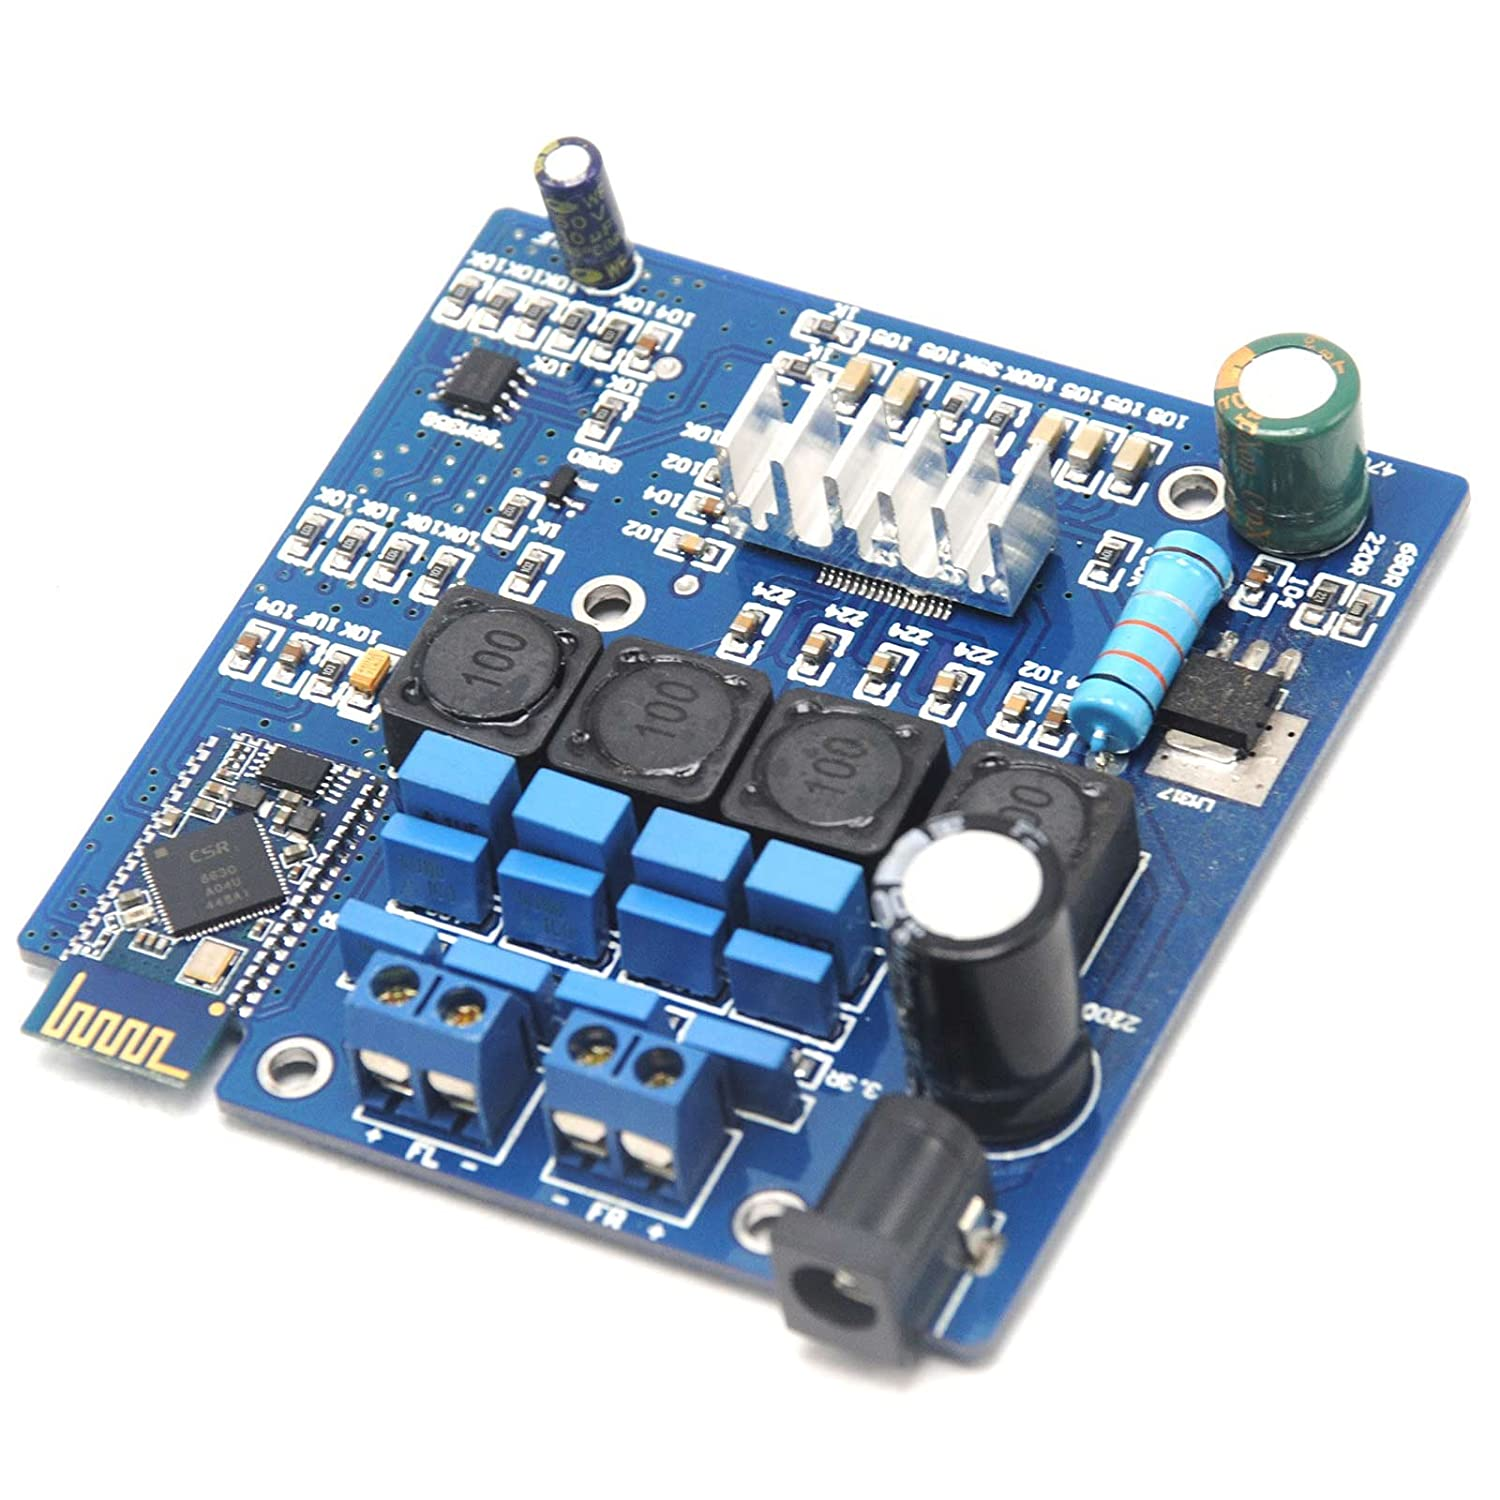 New Tpa3116 Bluetooth Amplifier Board Class D 50w2 Amp Speaker Pcb Circuit Hasl Electronic Printed Maker Csr40 Home Audio Theater